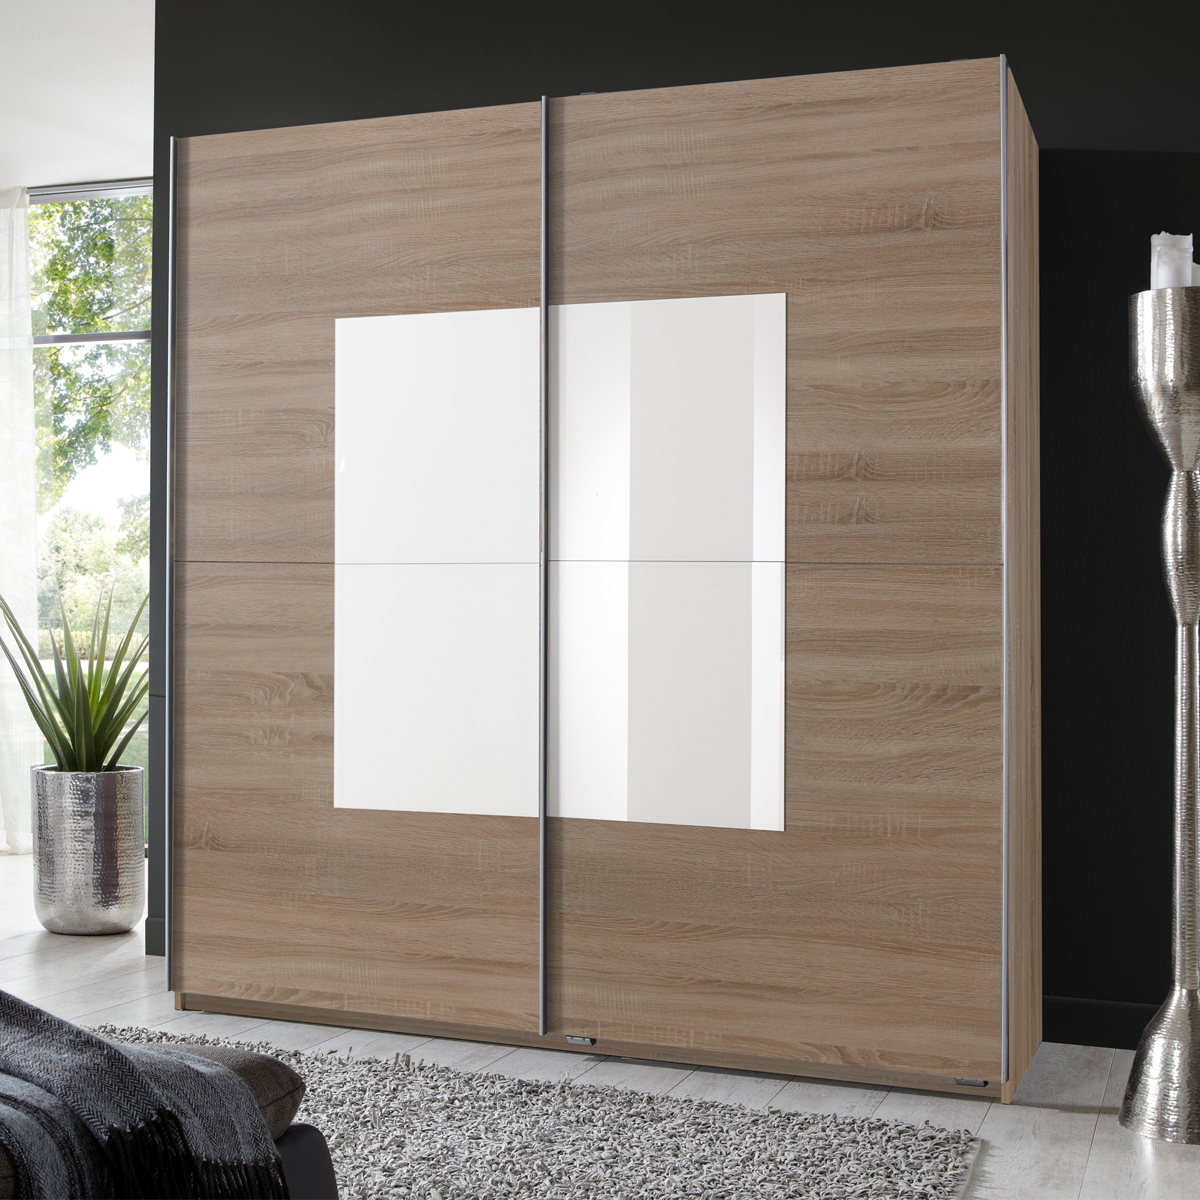 kleiderschrank taro schwebet renschrank eiche s gerau abs wei es glas ebay. Black Bedroom Furniture Sets. Home Design Ideas